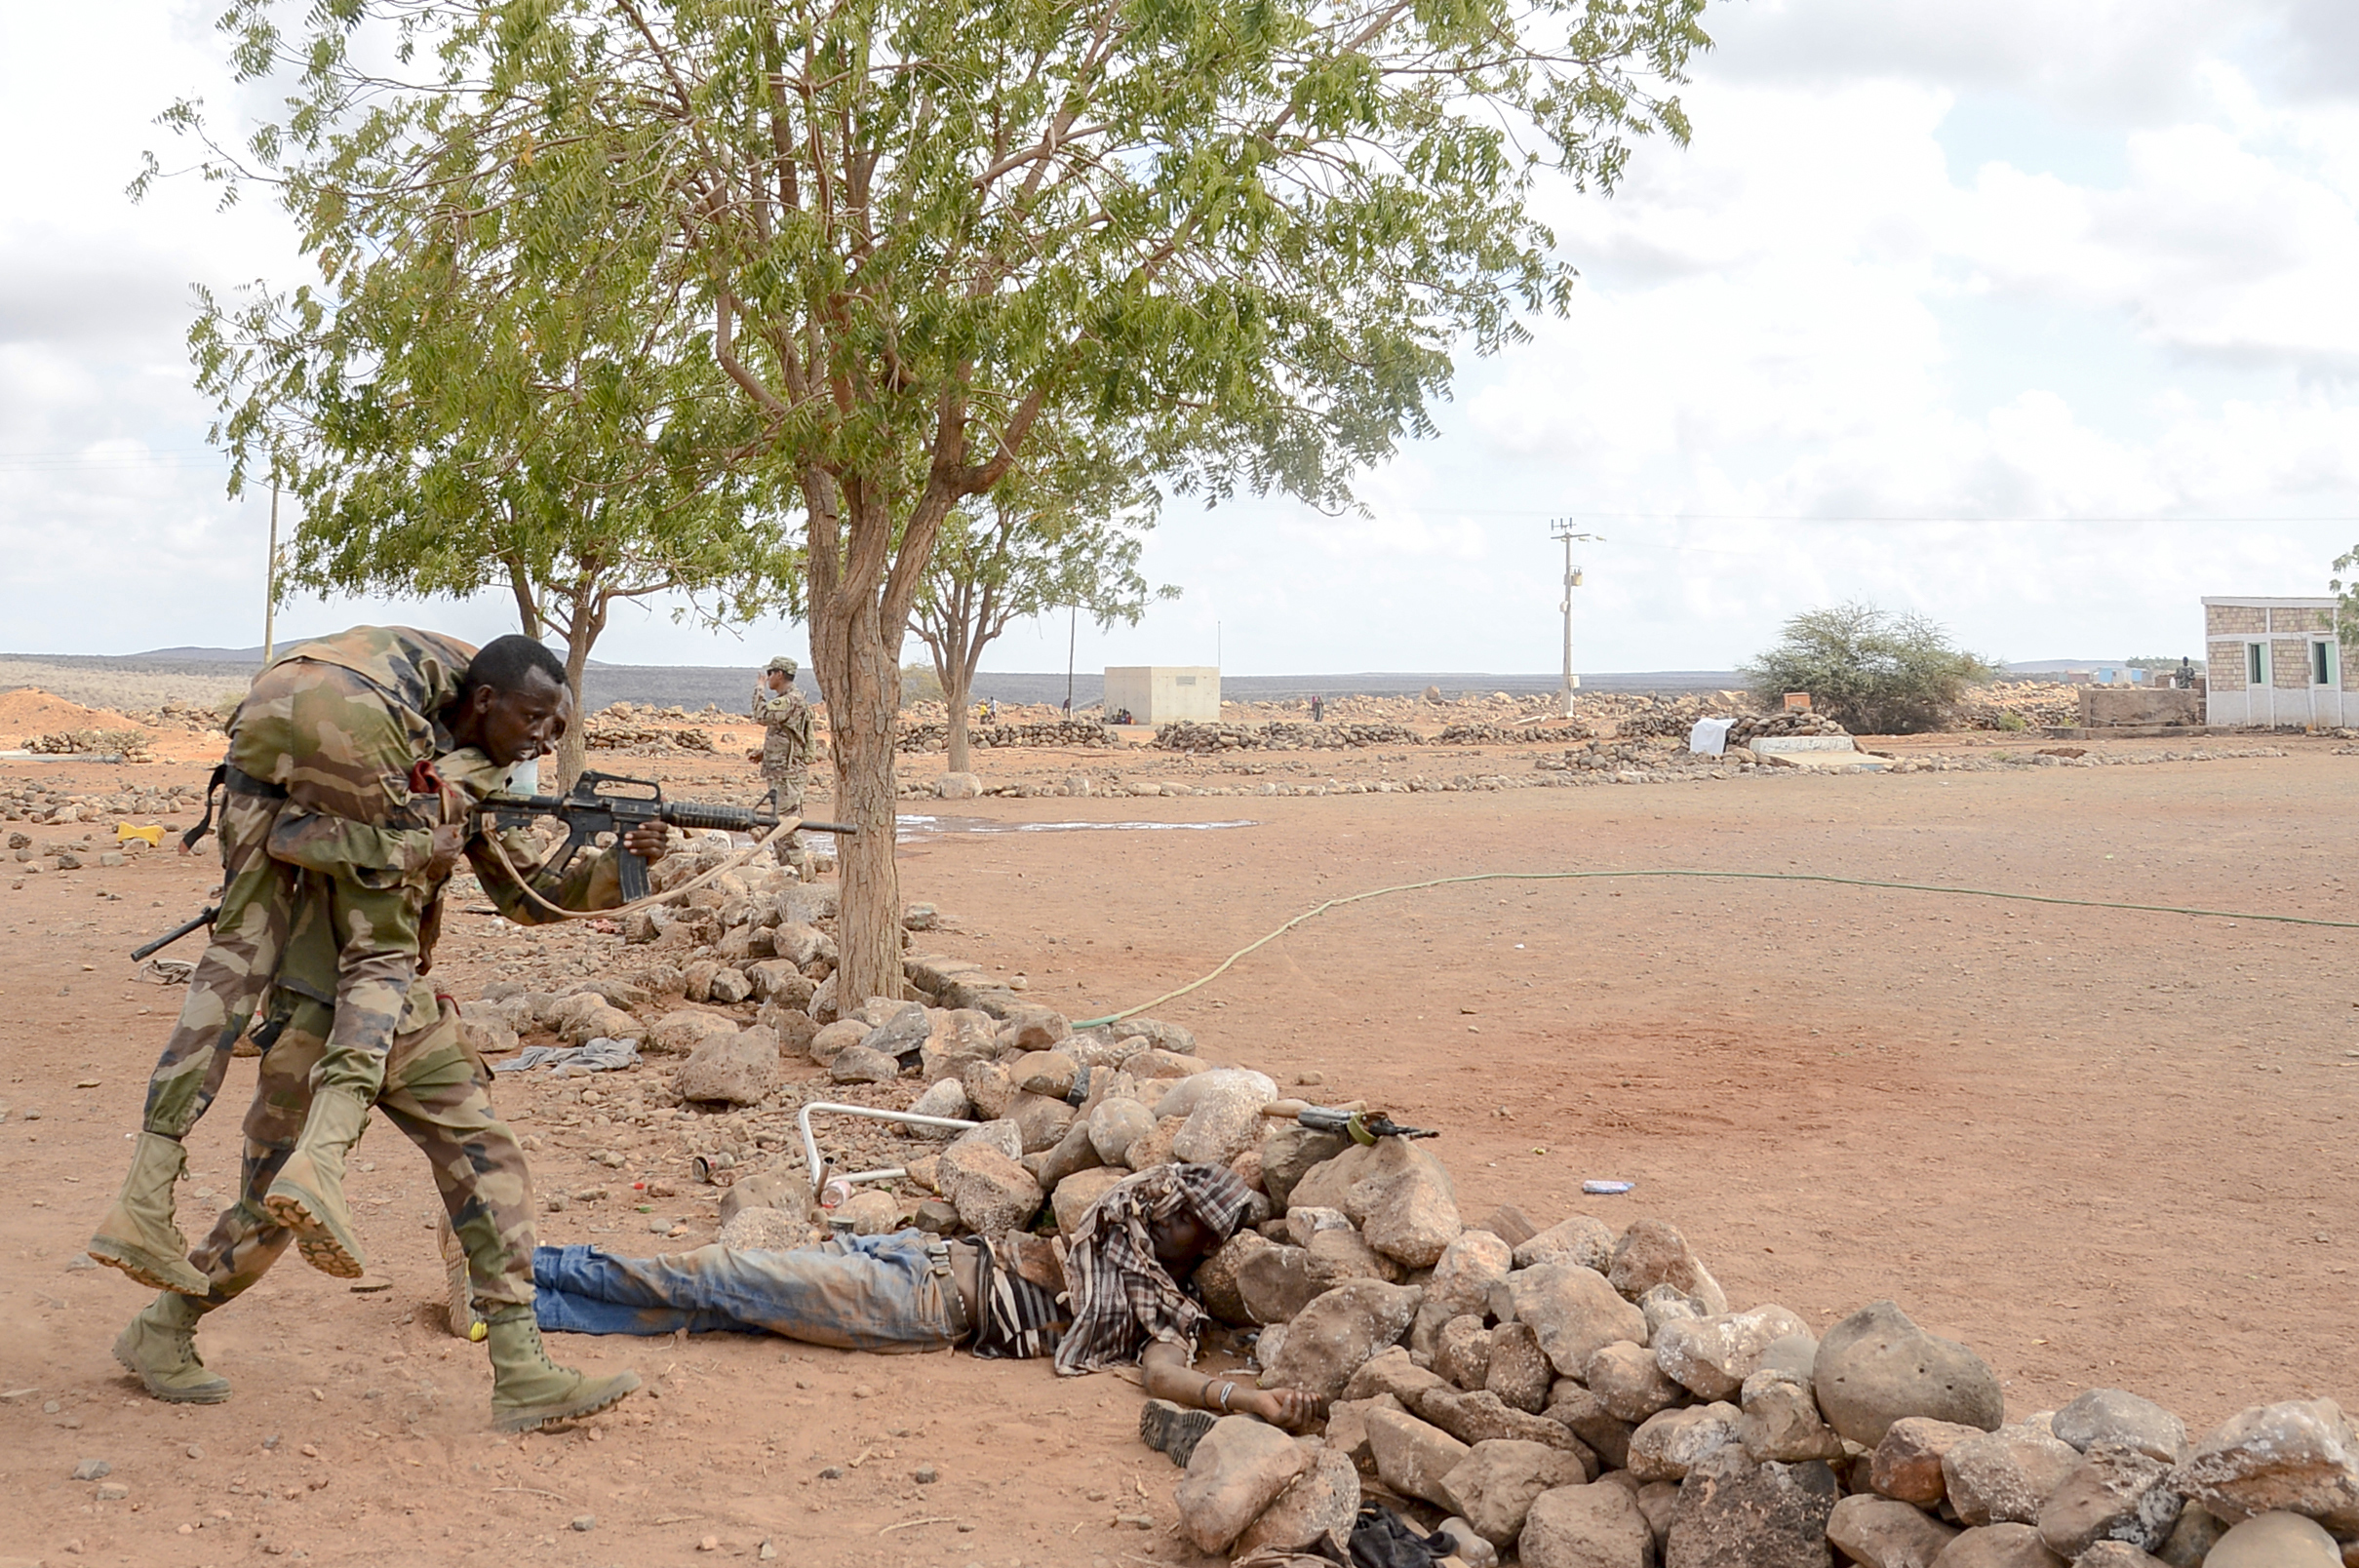 A Djiboutian soldier evacuates a simulated casualty during the culminating exercise of a five-week training cycle for the newly formed Rapid Intervention Battalion (RIB), a Djiboutian army crisis response unit, at site outside Djibouti City, May 3, 2018.  U.S. Army Soldiers from Alpha Company, 3rd Battalion, 141st Infantry Regiment, Texas National Guard, assigned to Combined Joint Task Force- Horn of Africa conducted the RIB training. (U.S. Navy Photo by Mass Communication Specialist 2nd Class Timothy M. Ahearn)